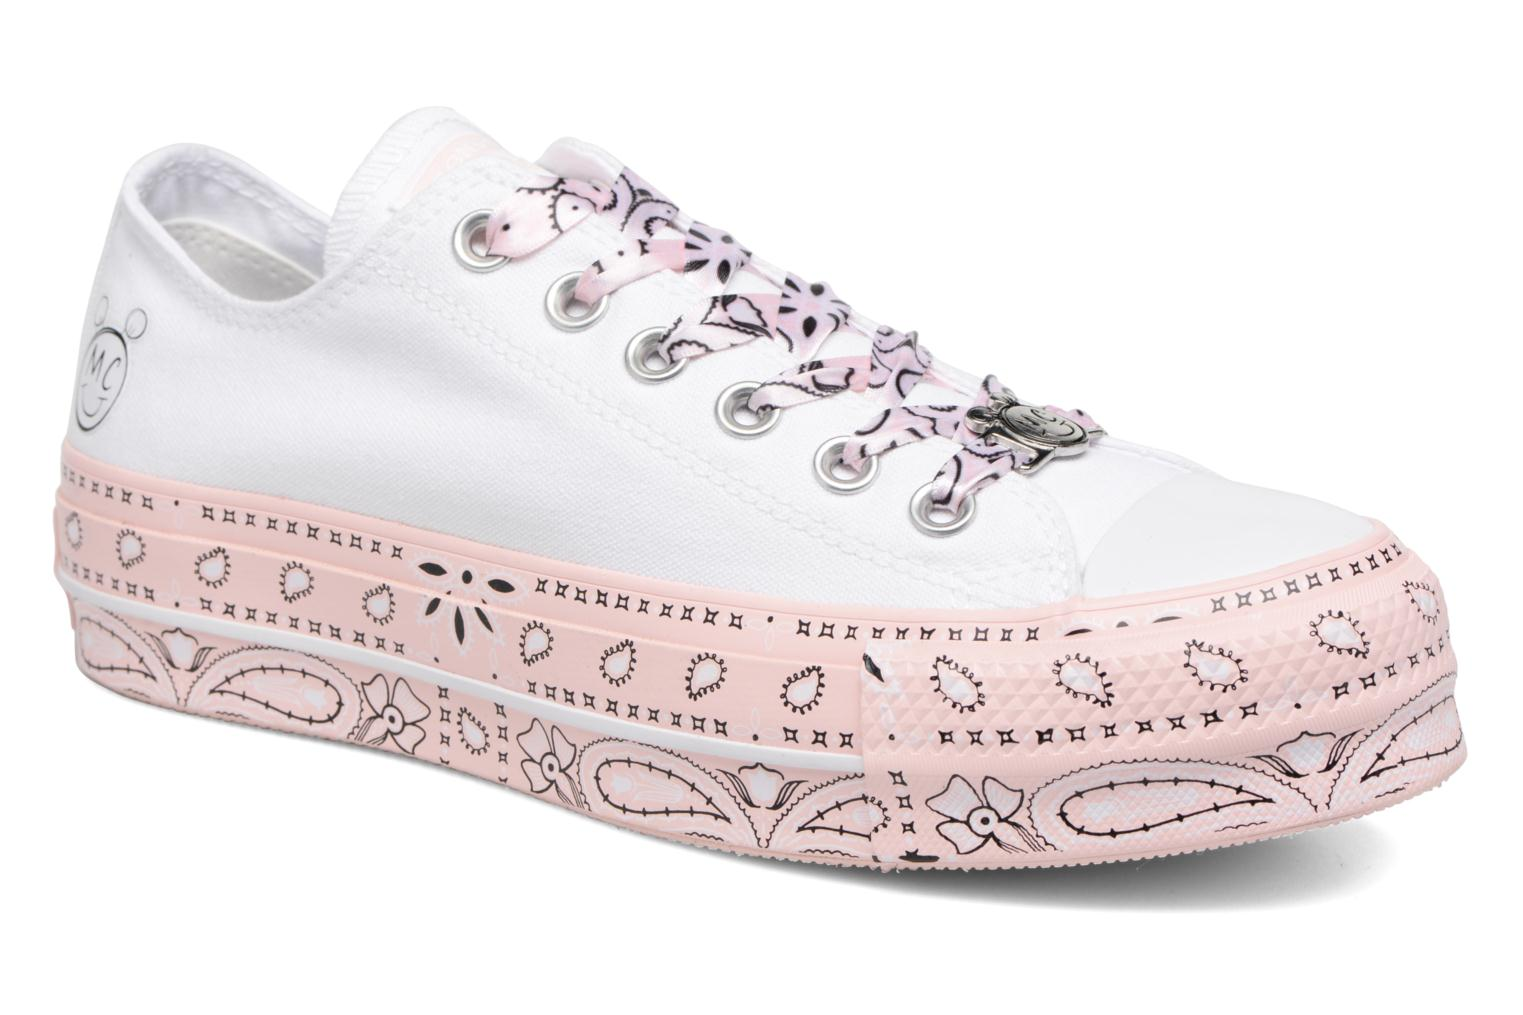 Converse x Miley Cyrus </br> Chuck Taylor All Star Lift Ox